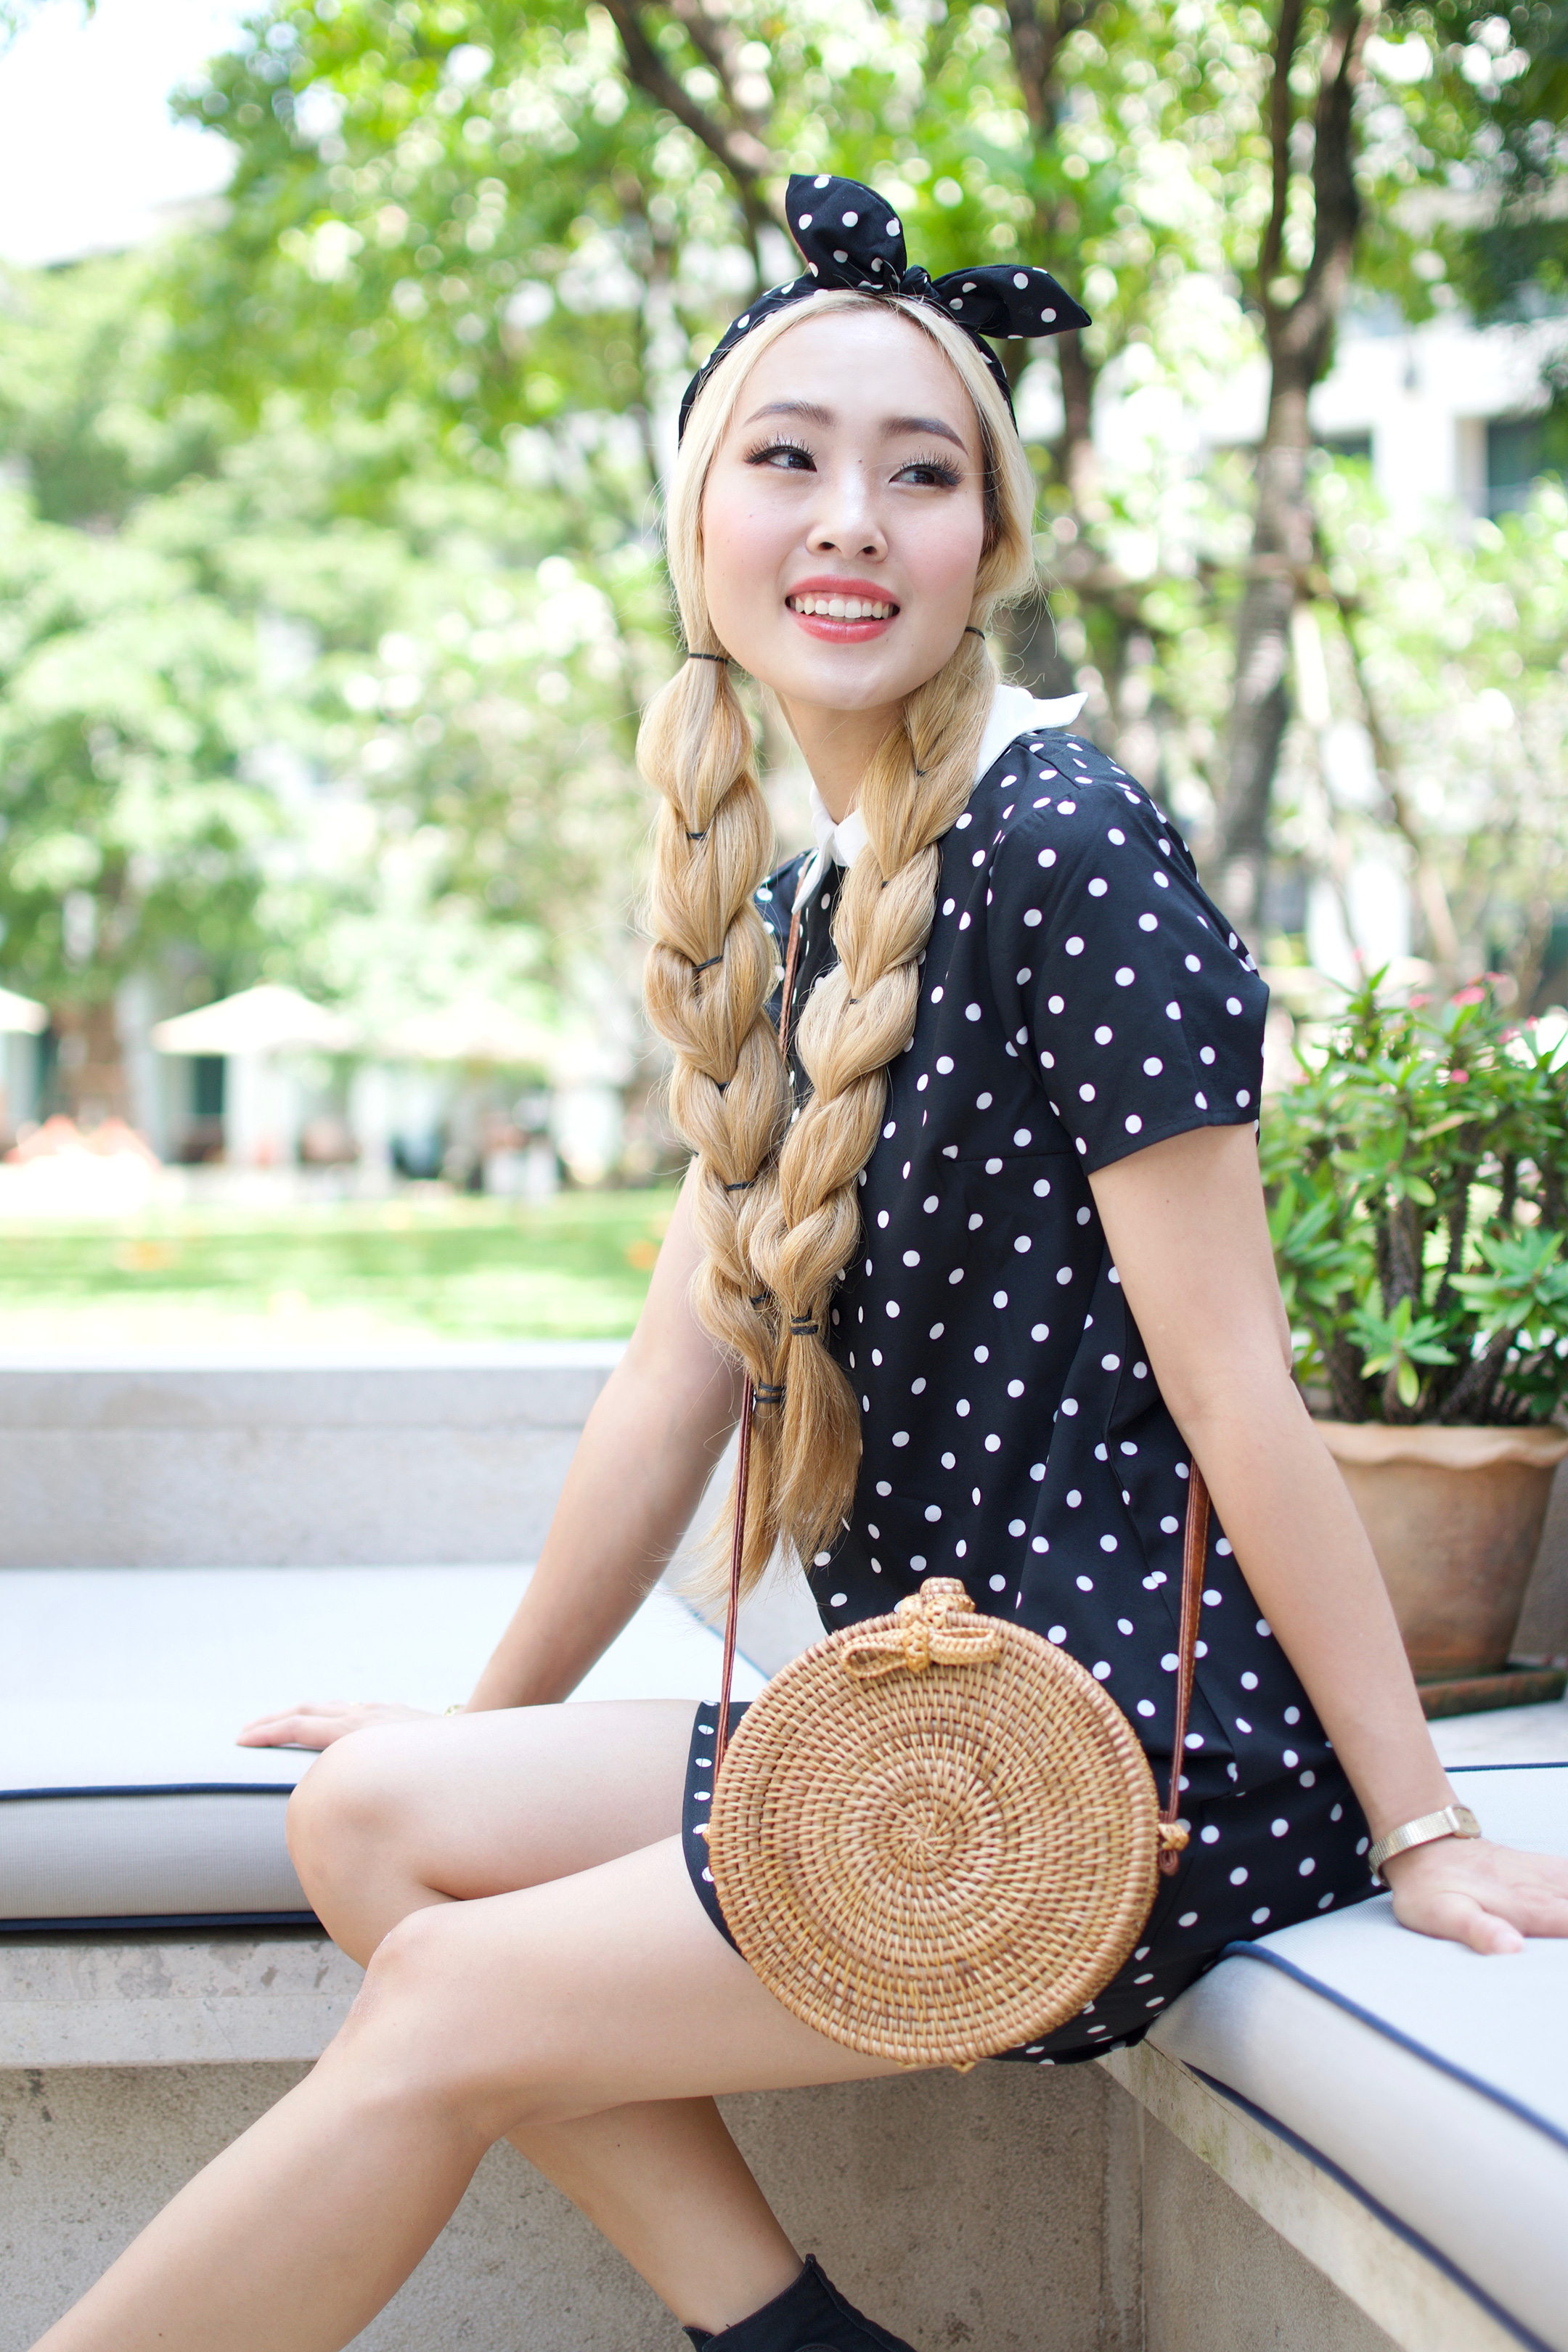 I have a love affair with the polka dot fashion trend, and there's no denying it! From oversized dots, to barely there itty-bitty dots, polka dots of all sizes are here to stay. You can shop my exact look as well as some of my current favorite polka dot pieces! | #ontheblog | #ootd | #travelThailand | #traveloutfit | #Bangkok | #visitThailand | #summerfashion | #polkadotdress | #polkadotoutfit